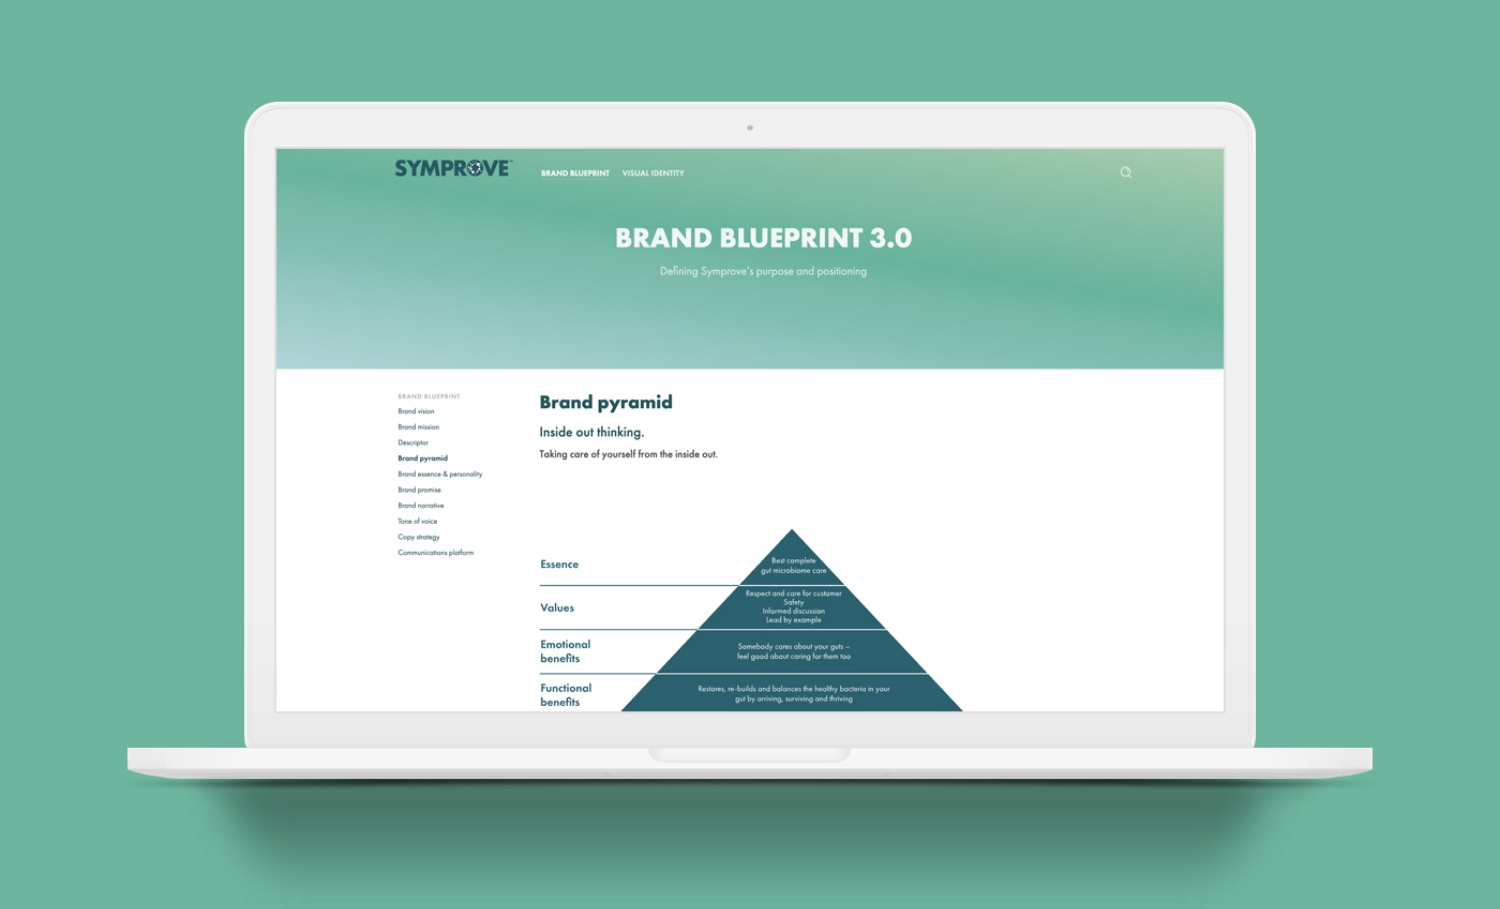 Symprove brand bluebrint on desktop